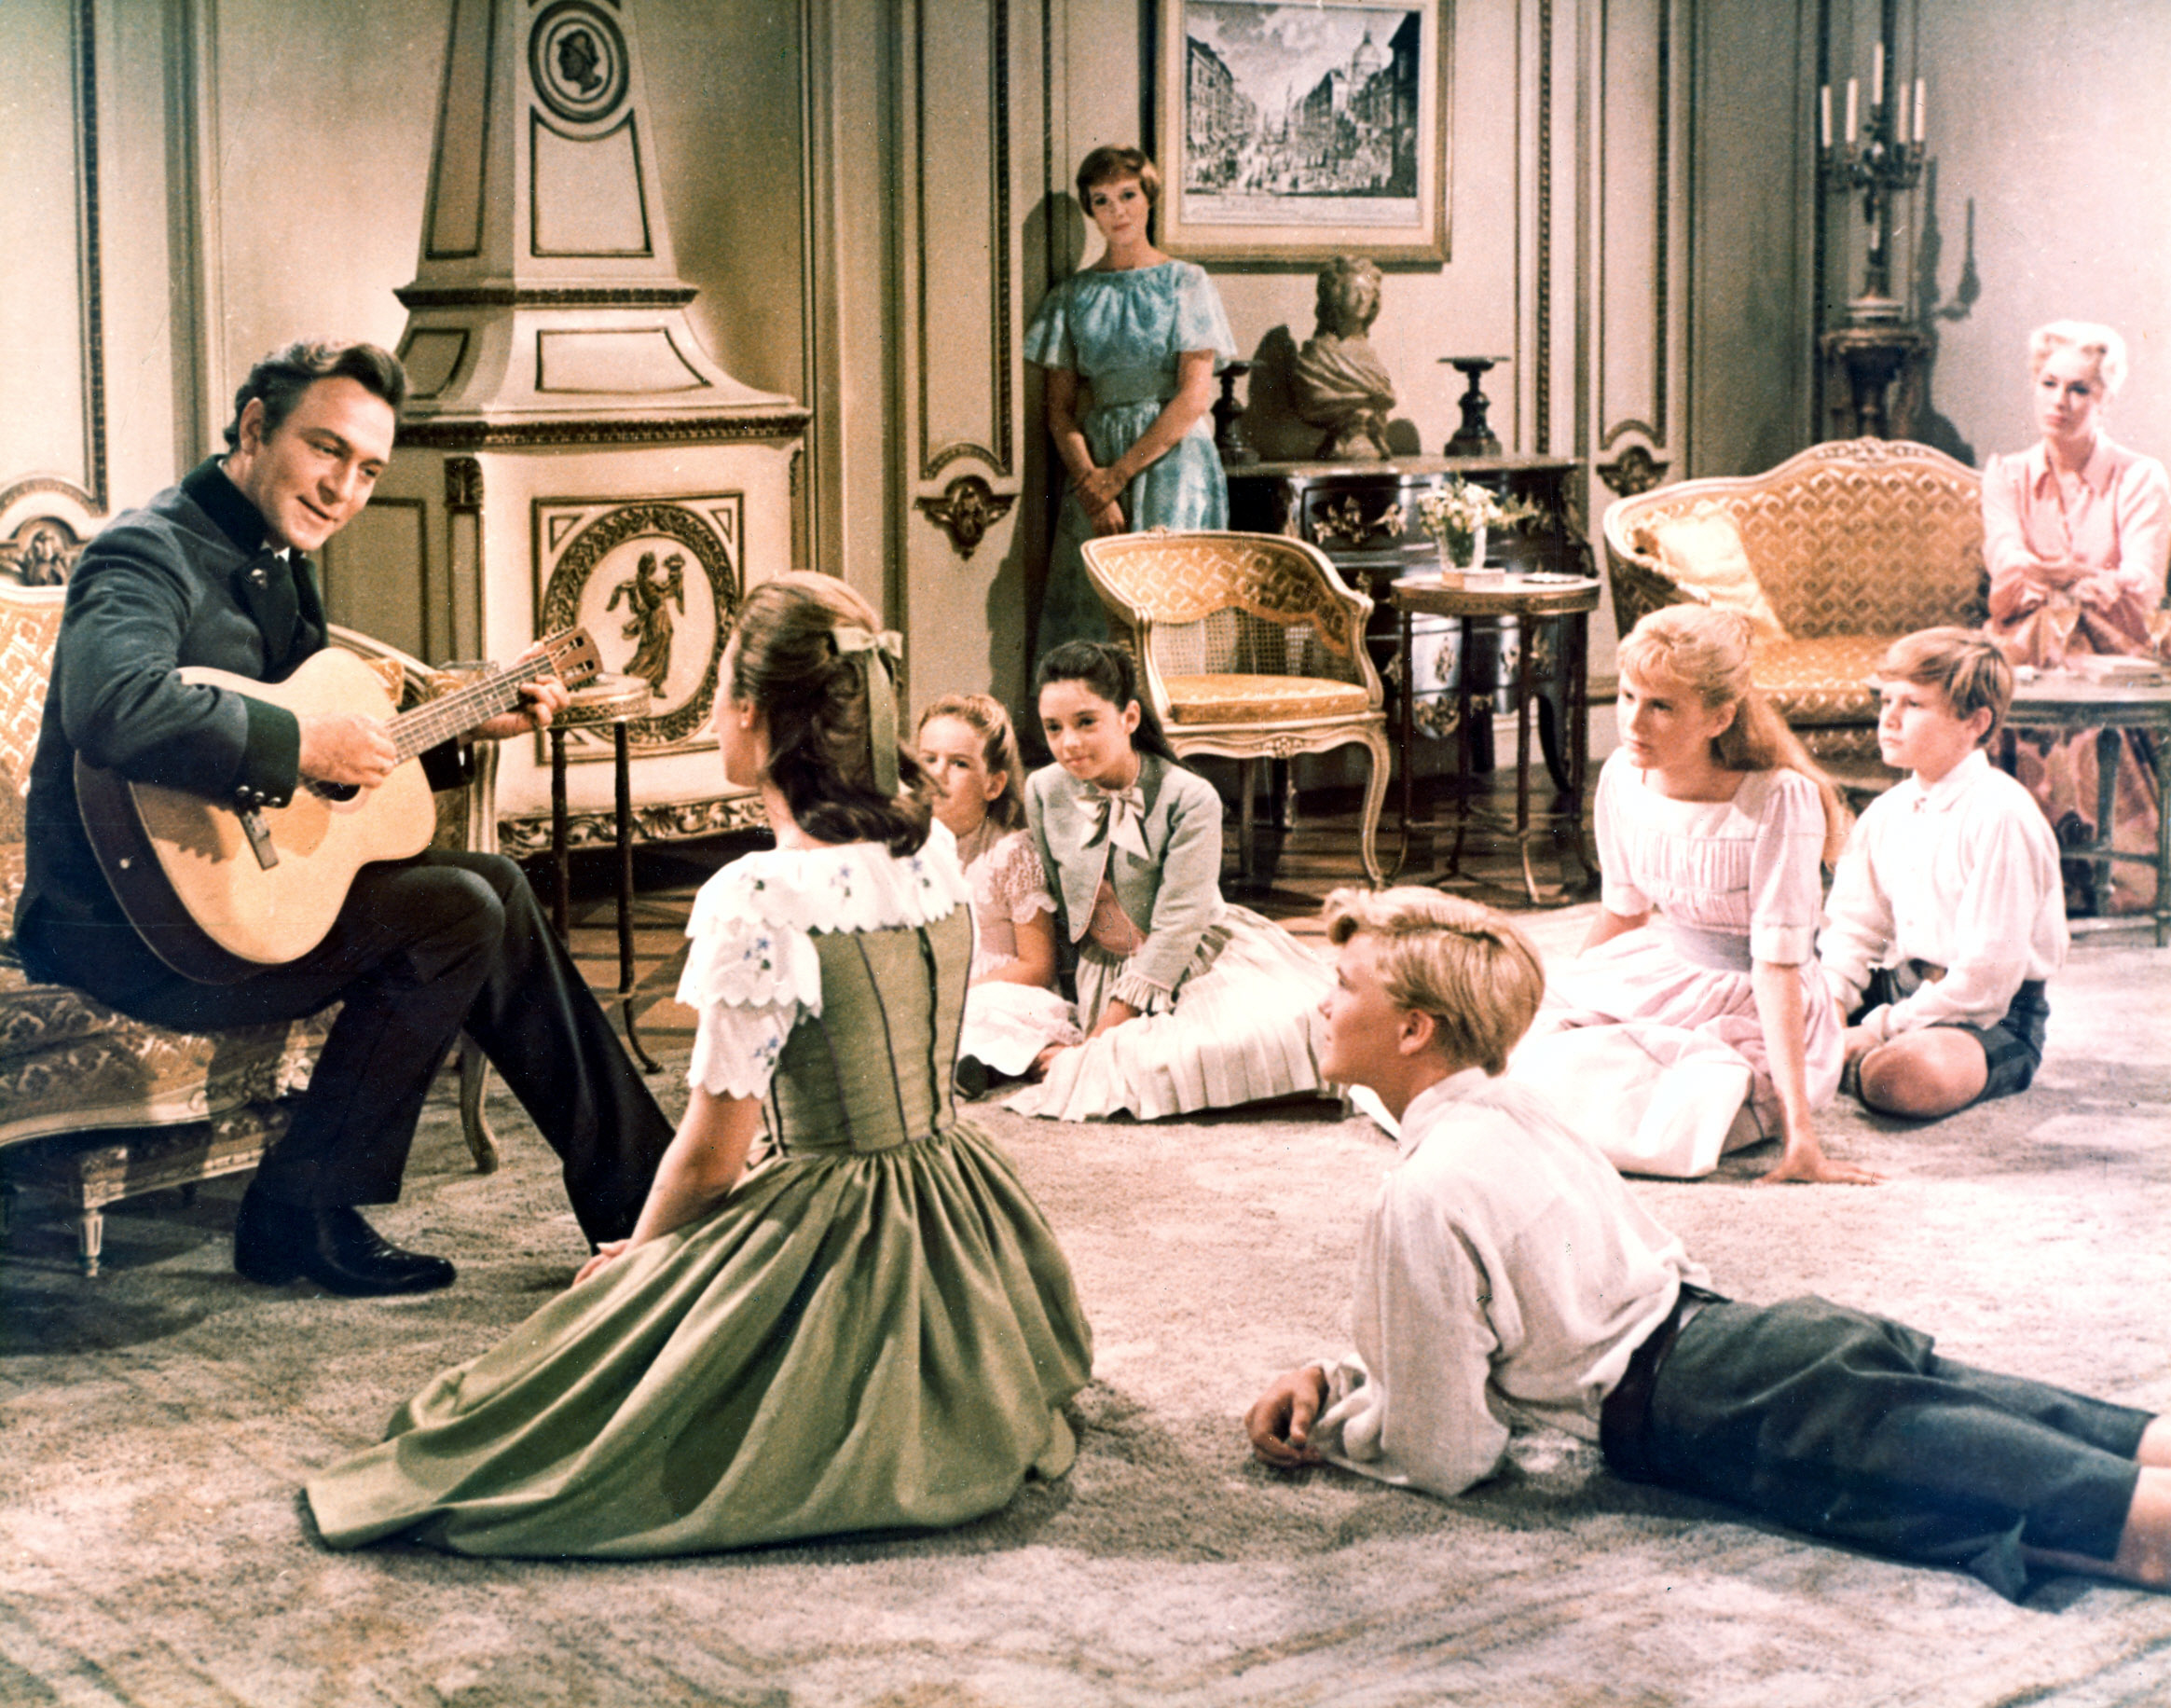 THE SOUND OF MUSIC, Christopher Plummer, Charmian Carr, Kym Karath, Angela Cartwright, Julie Andrews, Nicholas Hammond, Heather Menzies, Duane Chase, Eleanor Parker